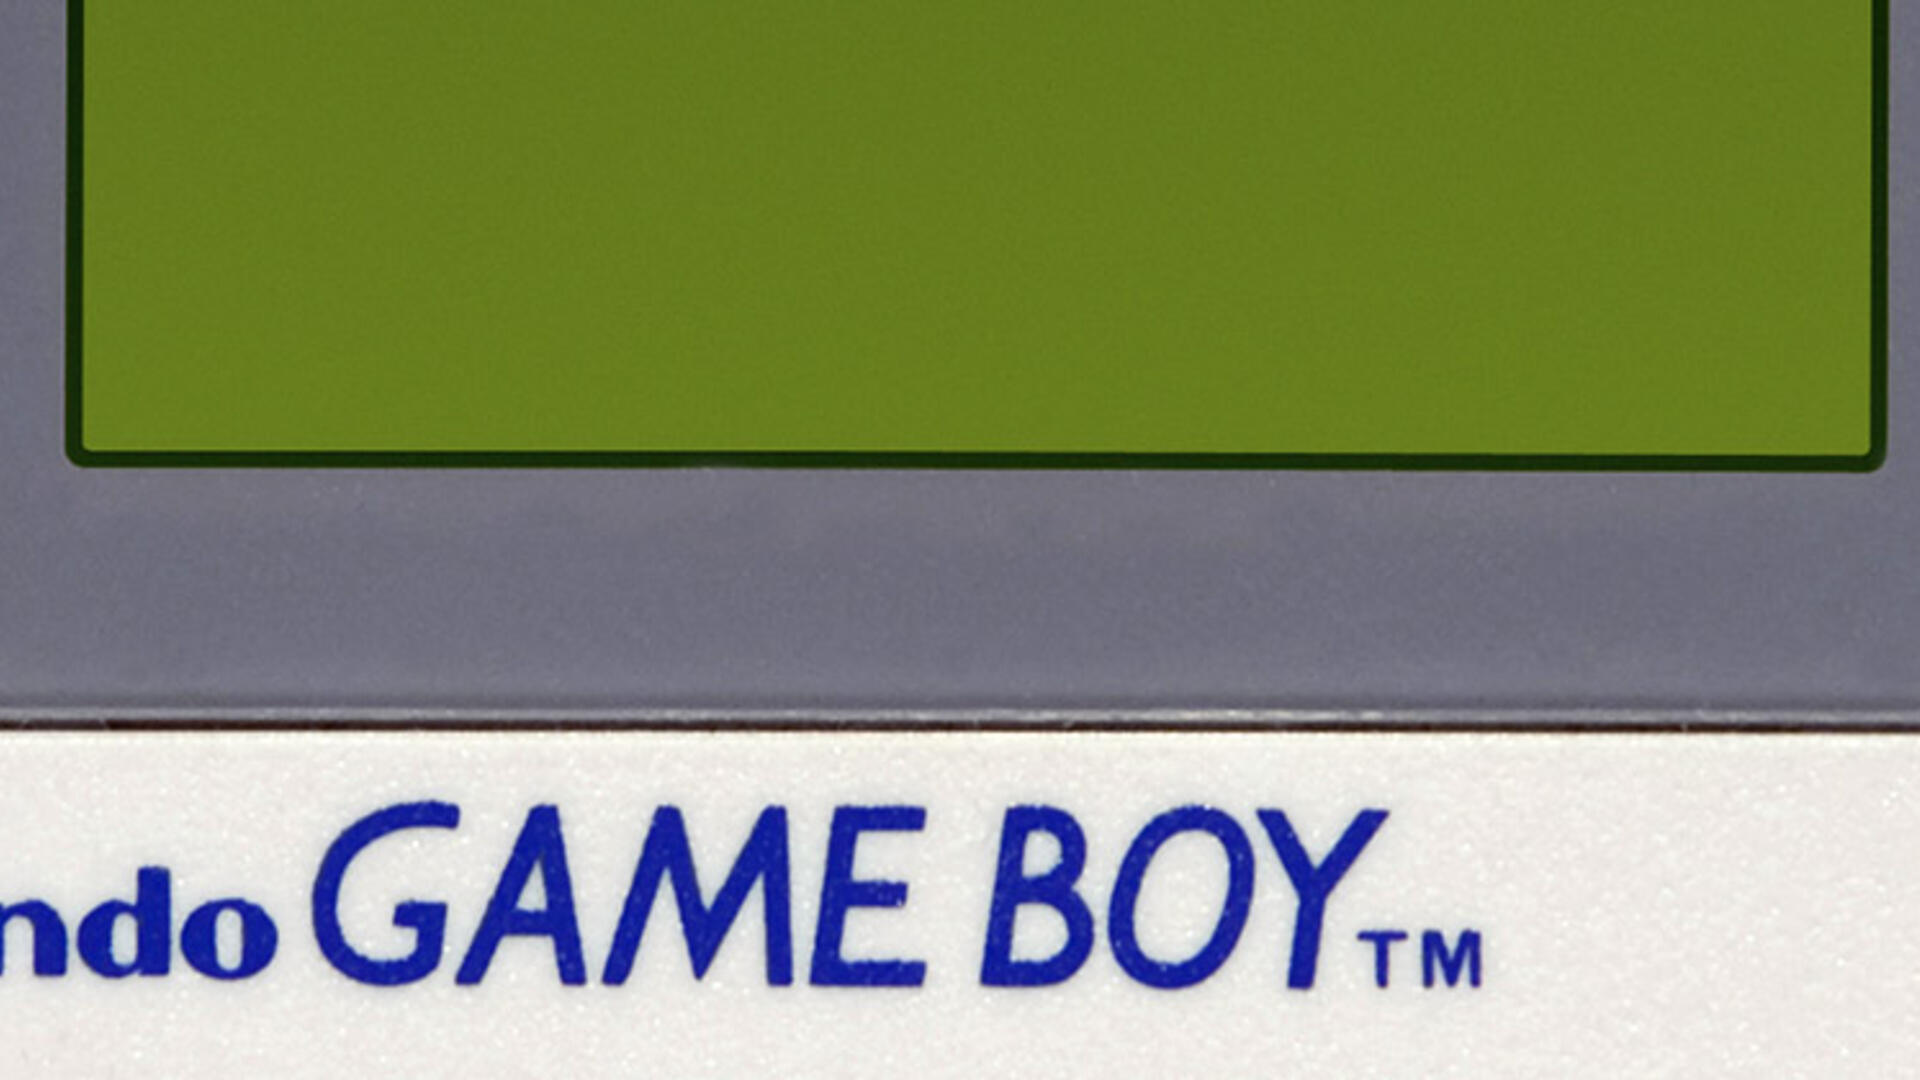 The Game Boy Legacy: A 25th Anniversary Celebration